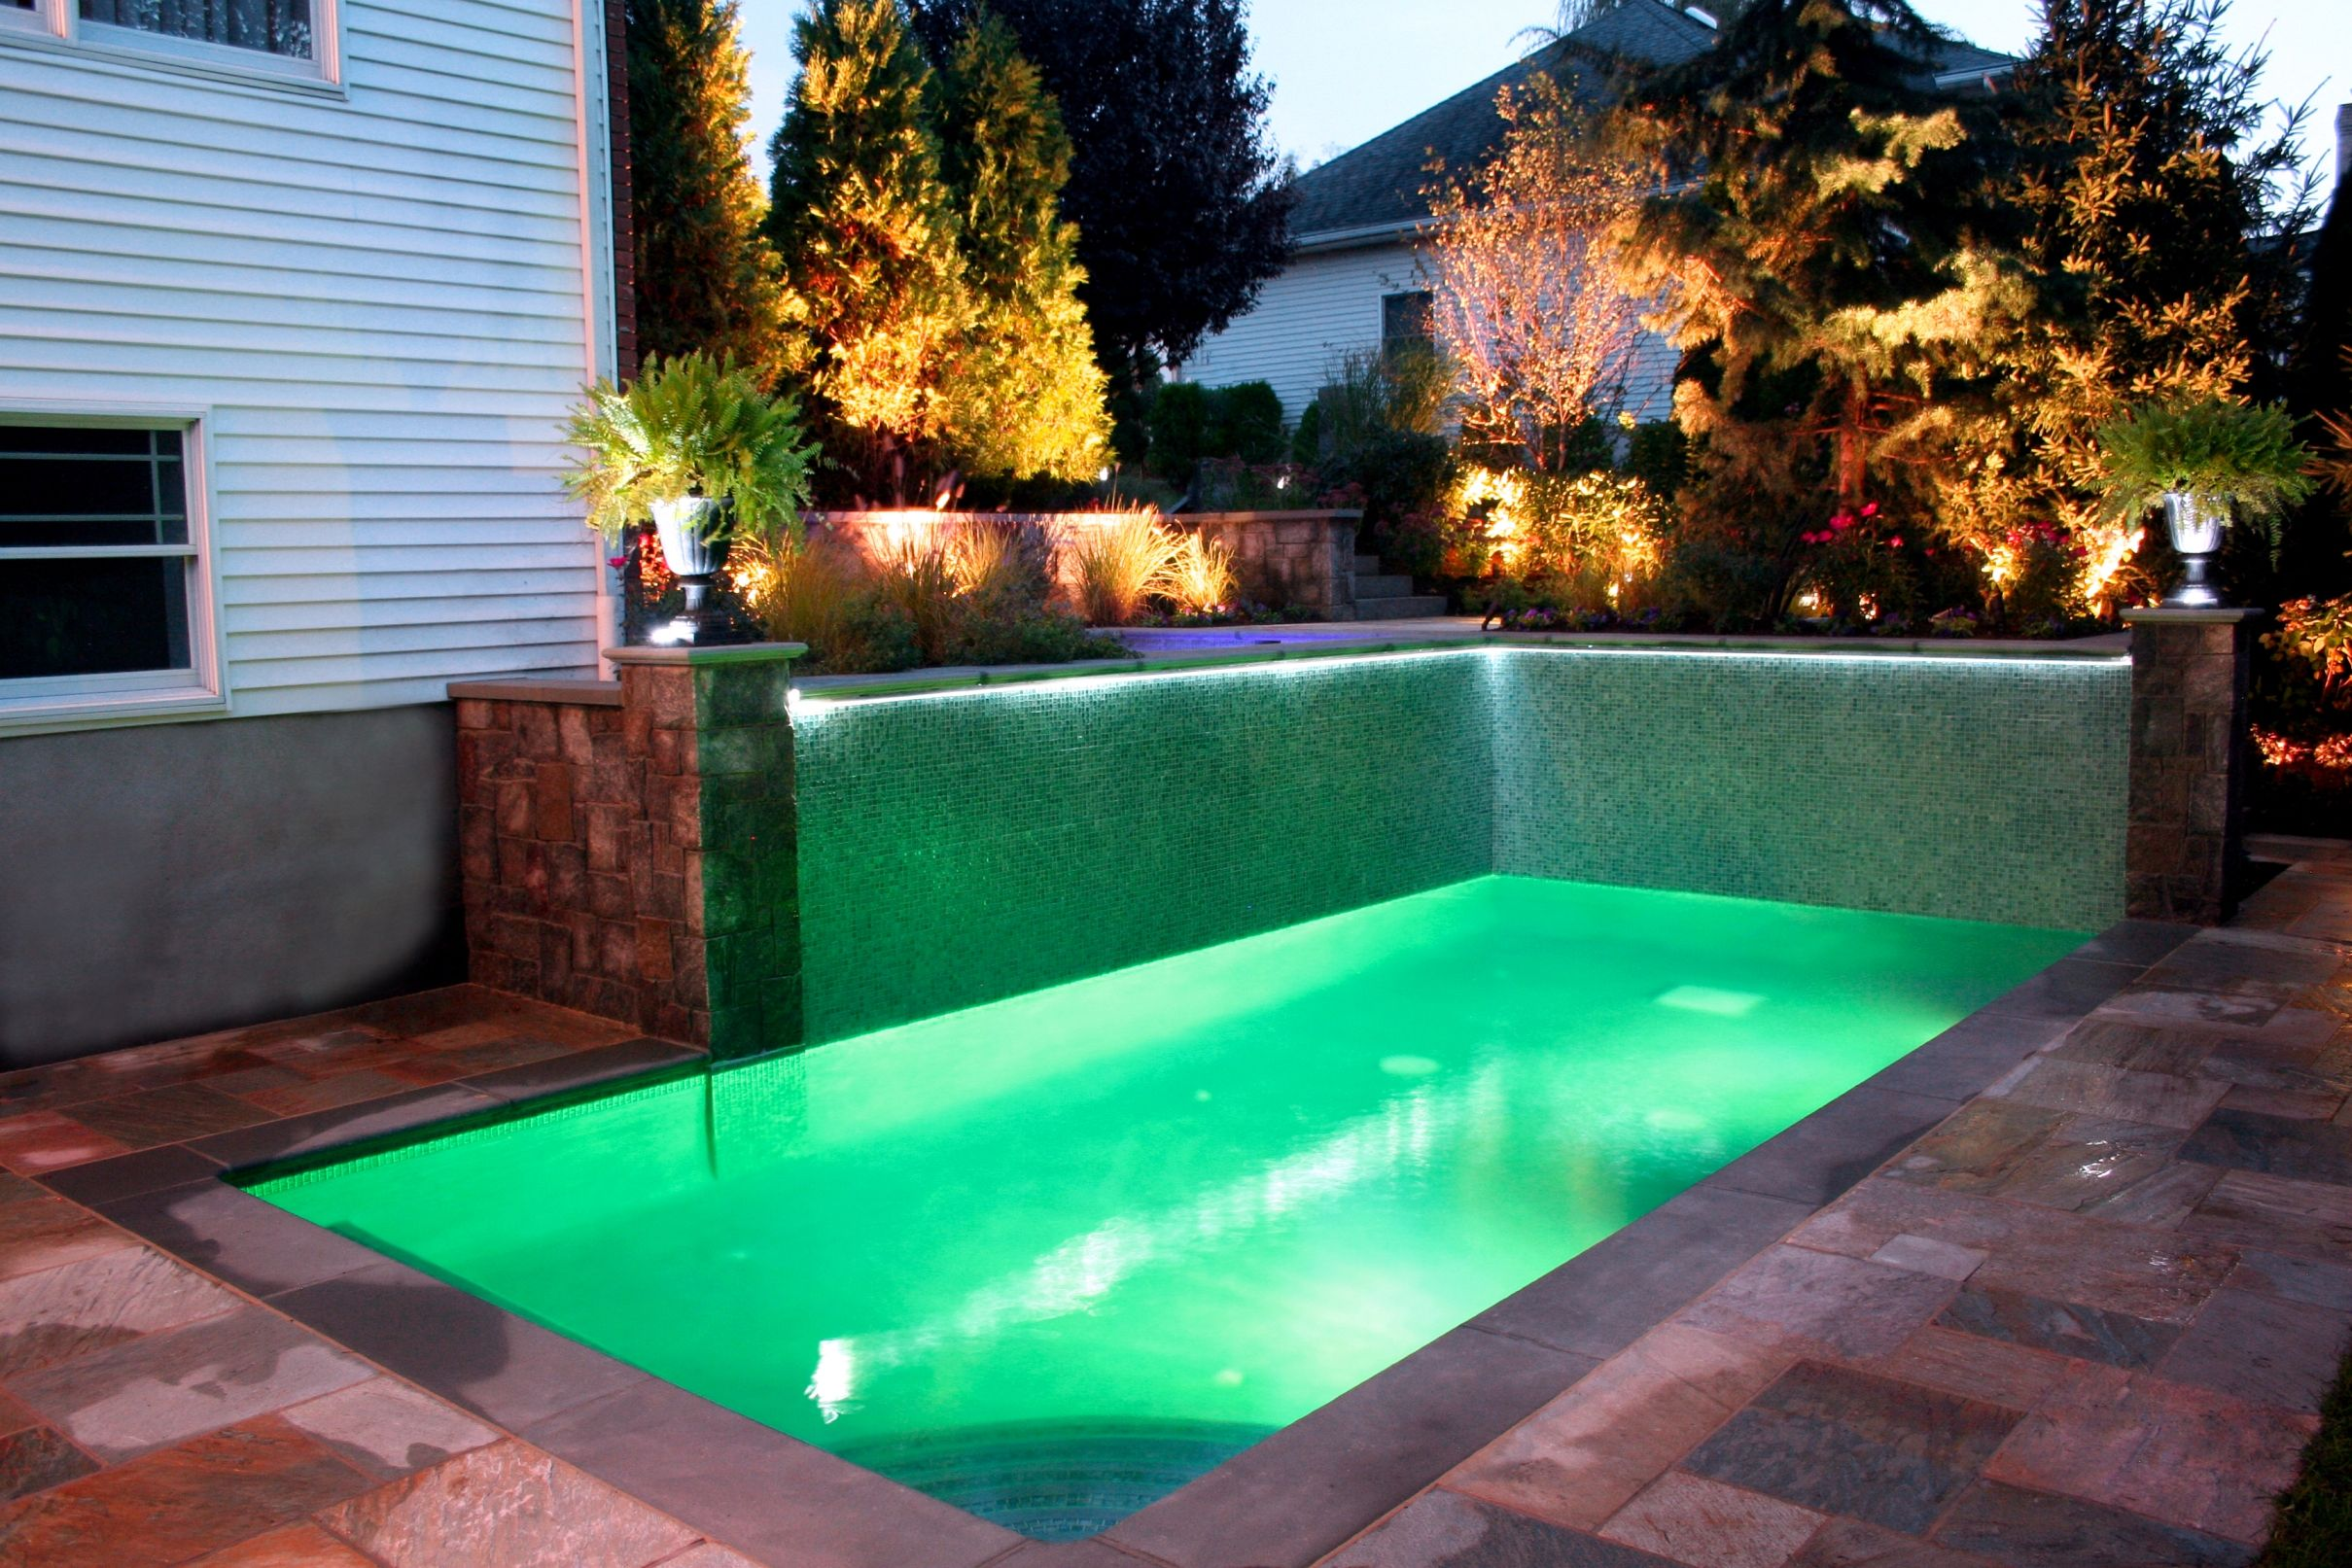 51 Amazing Pool Design Ideas Pool Designs Modern Pools And .